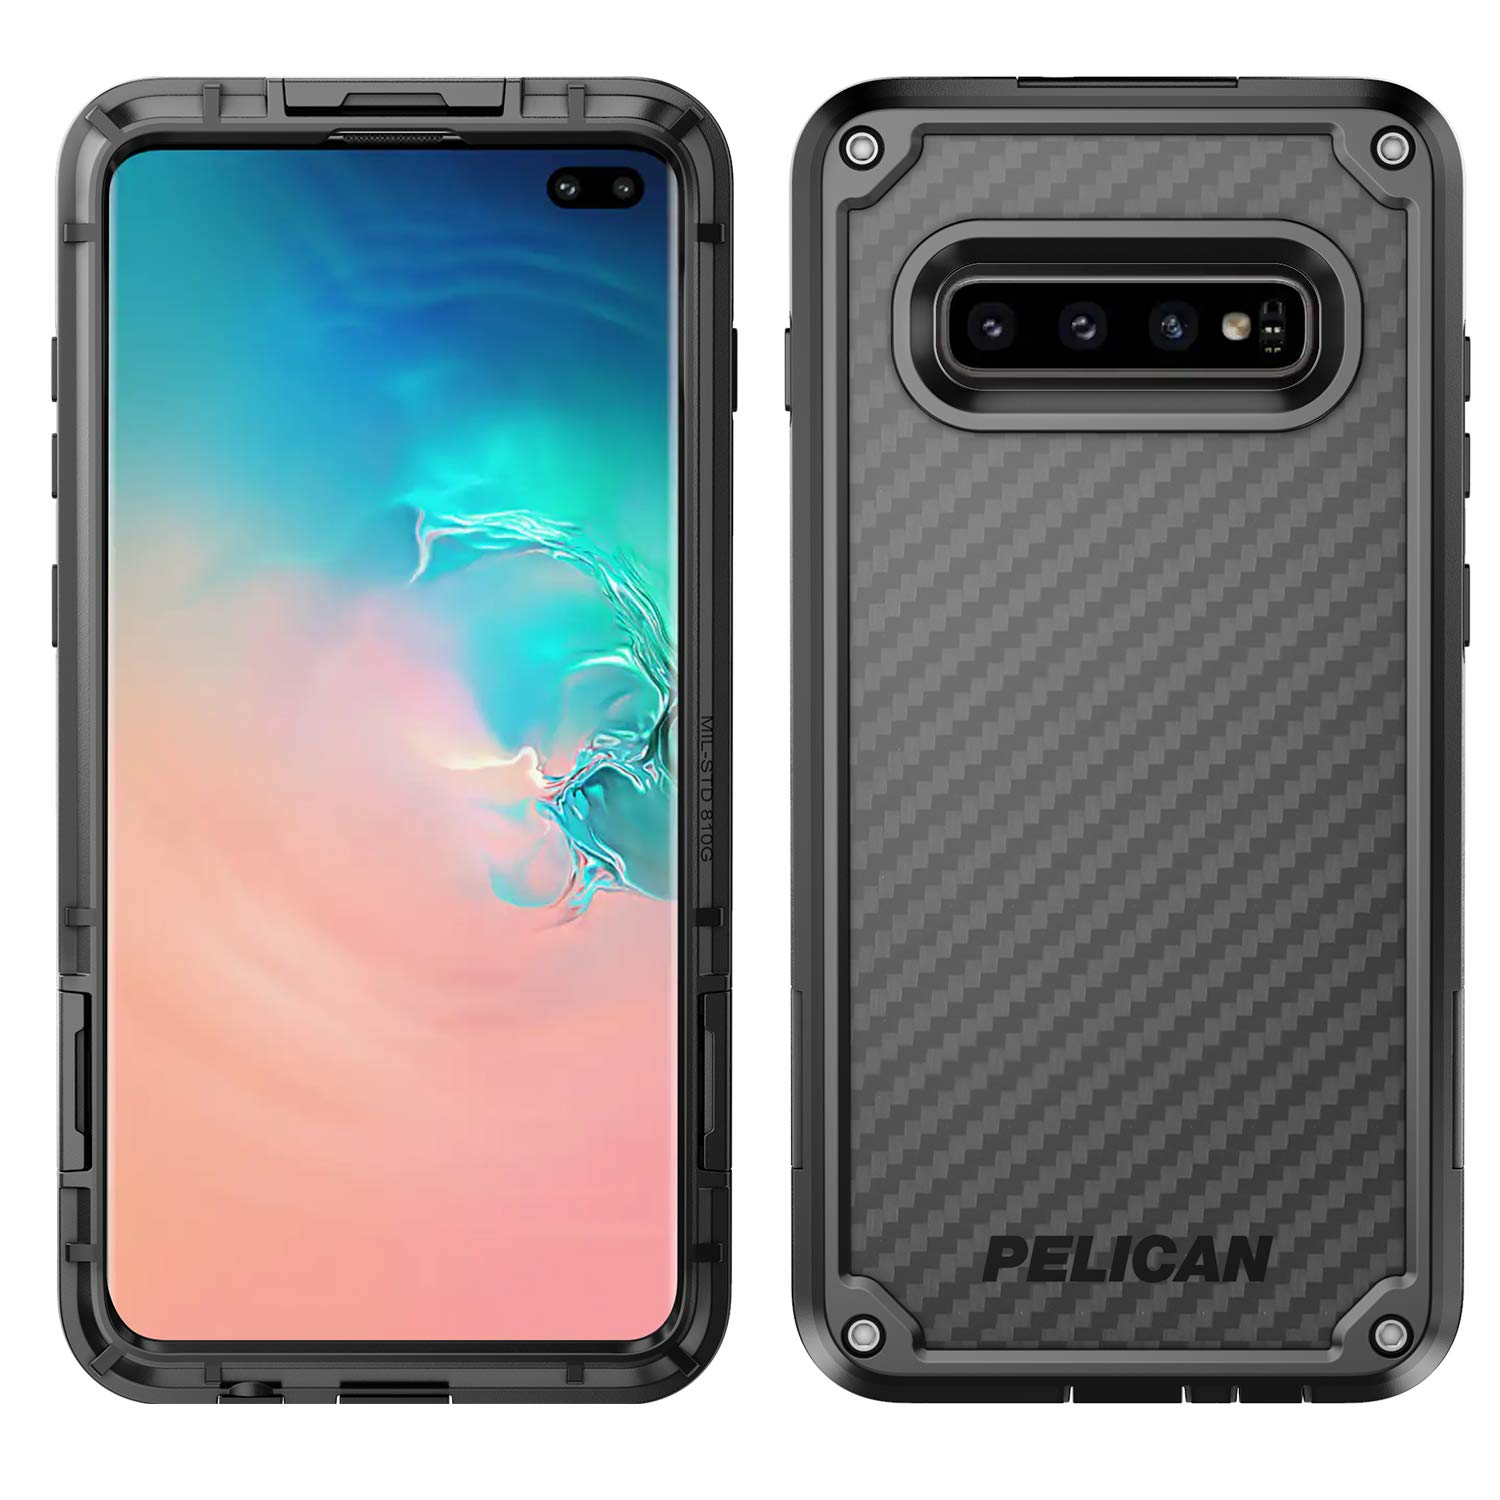 f668a44a7f2 Pelican Shield Samsung Galaxy S10+ Phone Case, 5-Layer Extreme Protective  Smartphone Cover, 12-Foot Drop Protection, Kickstand Belt Clip Accessory ...